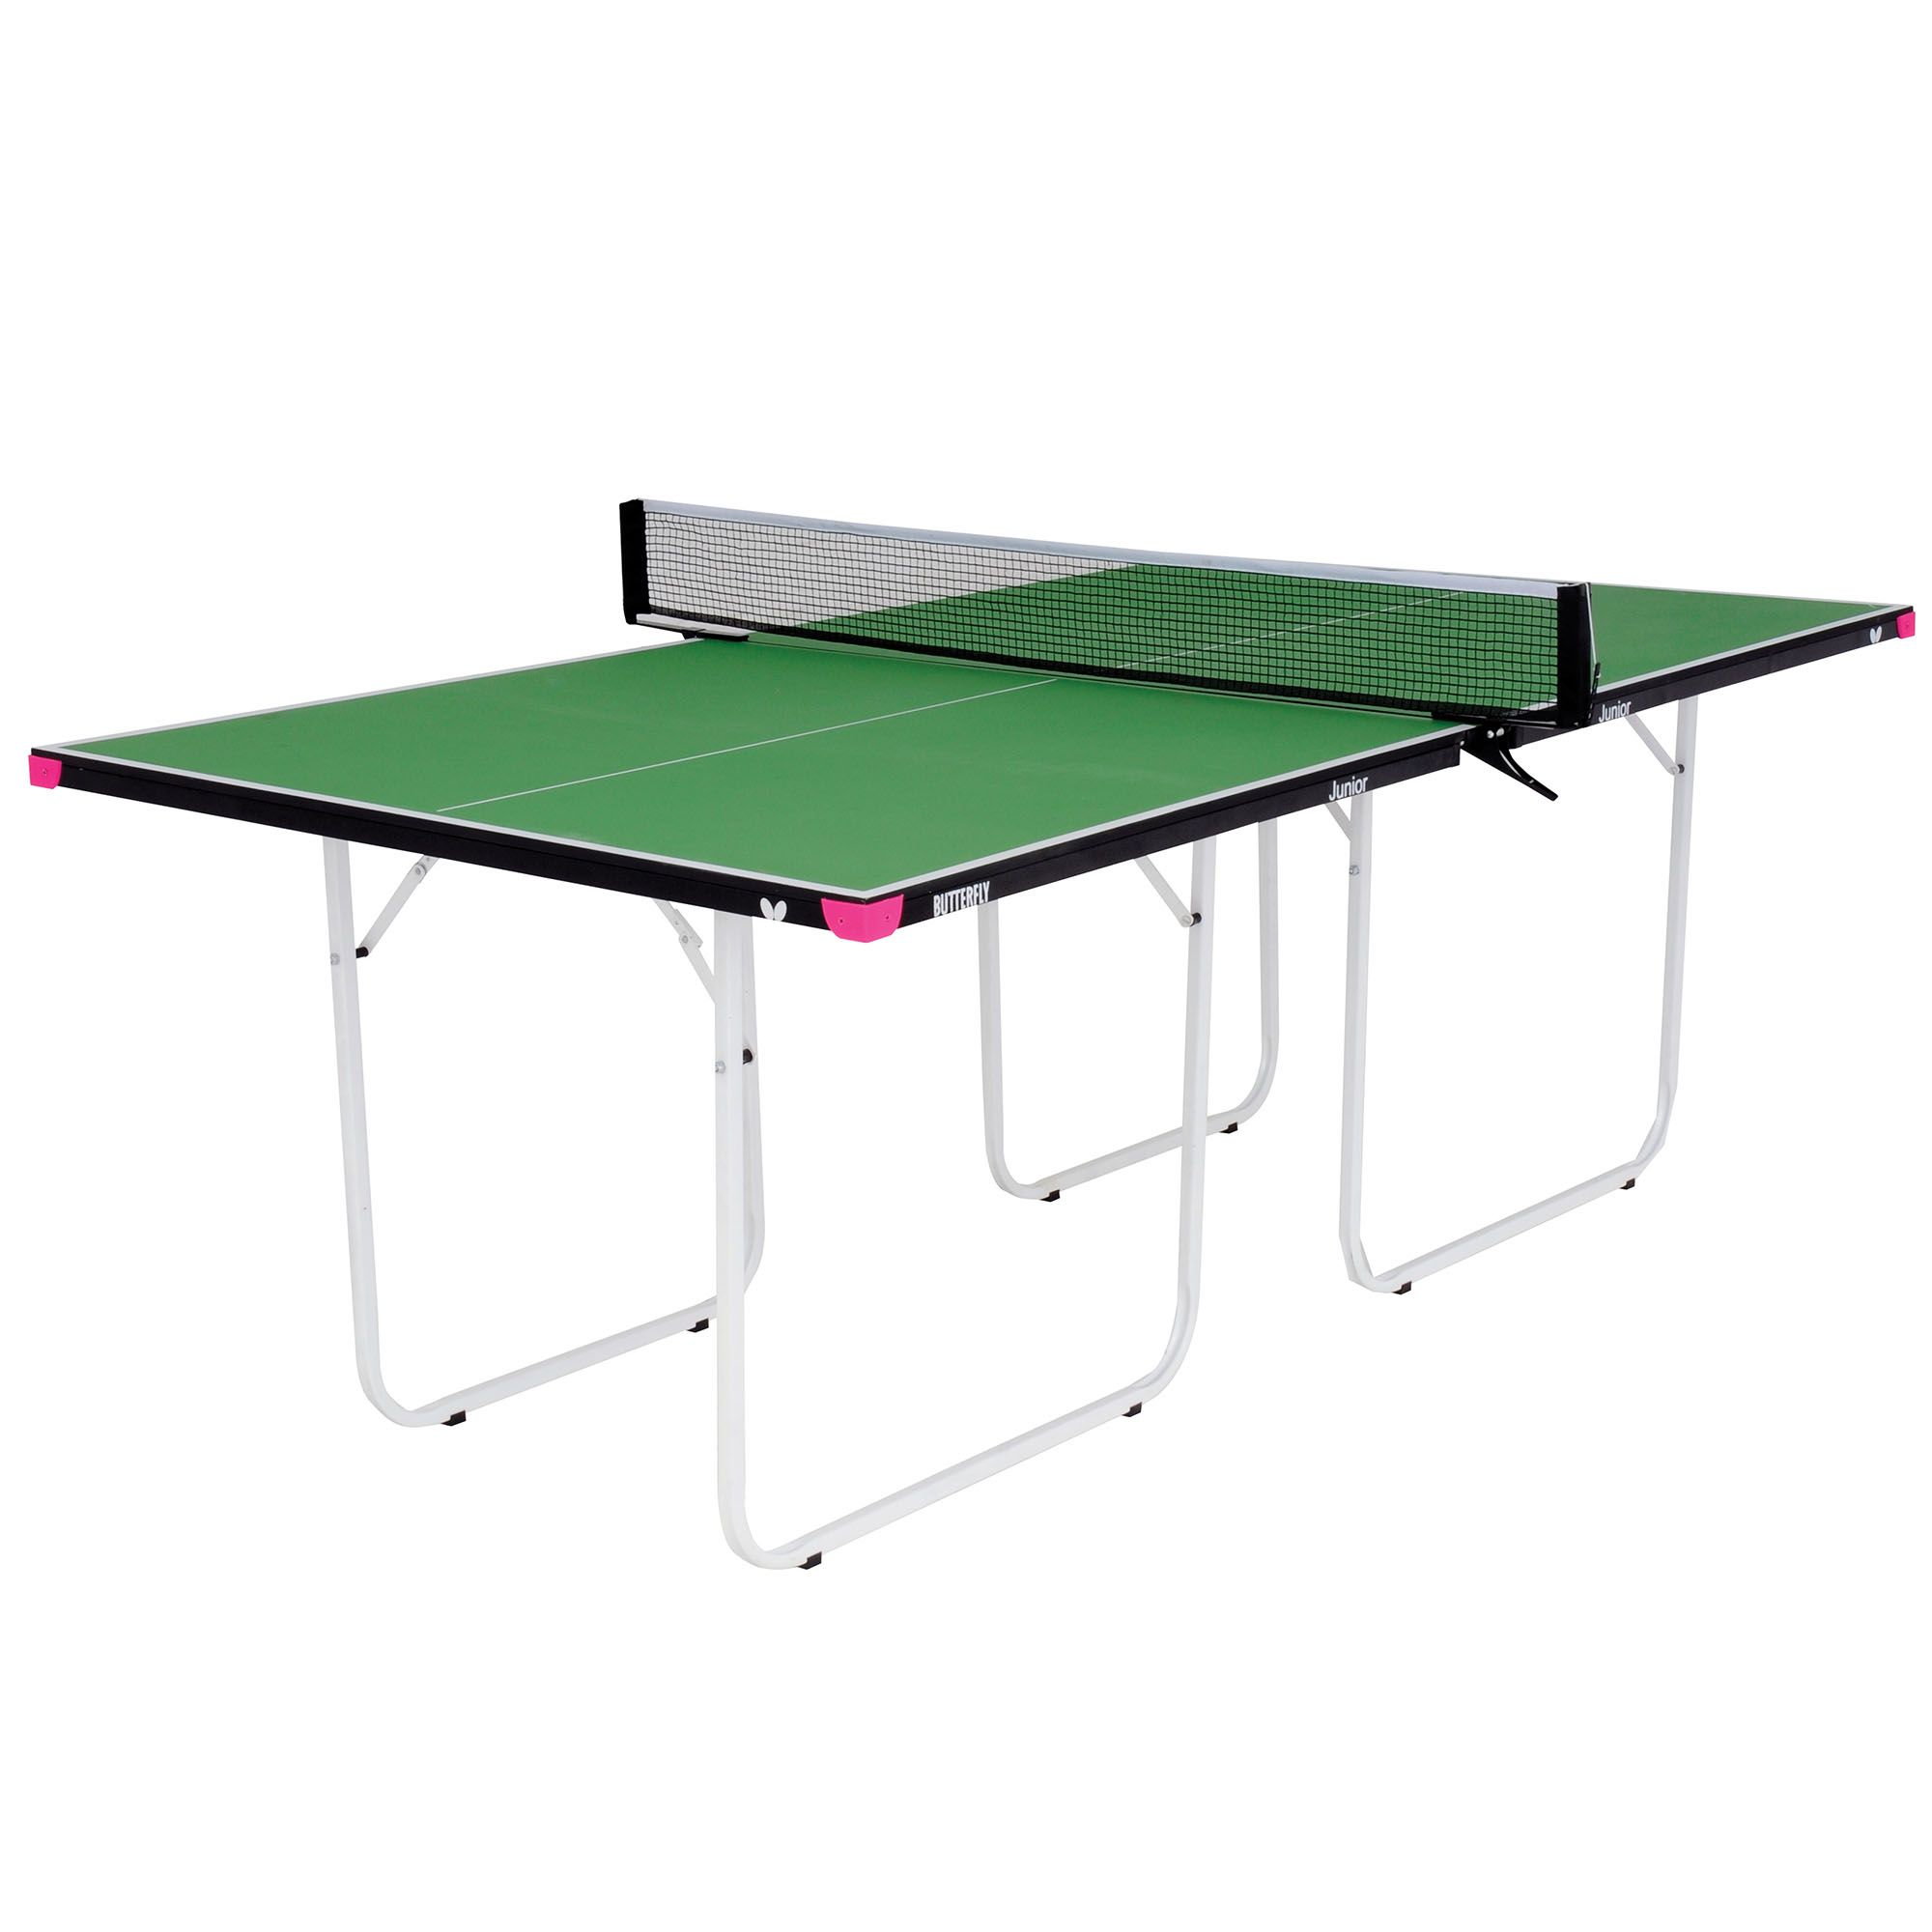 Butterfly junior indoor table tennis table - Butterfly tennis de table ...